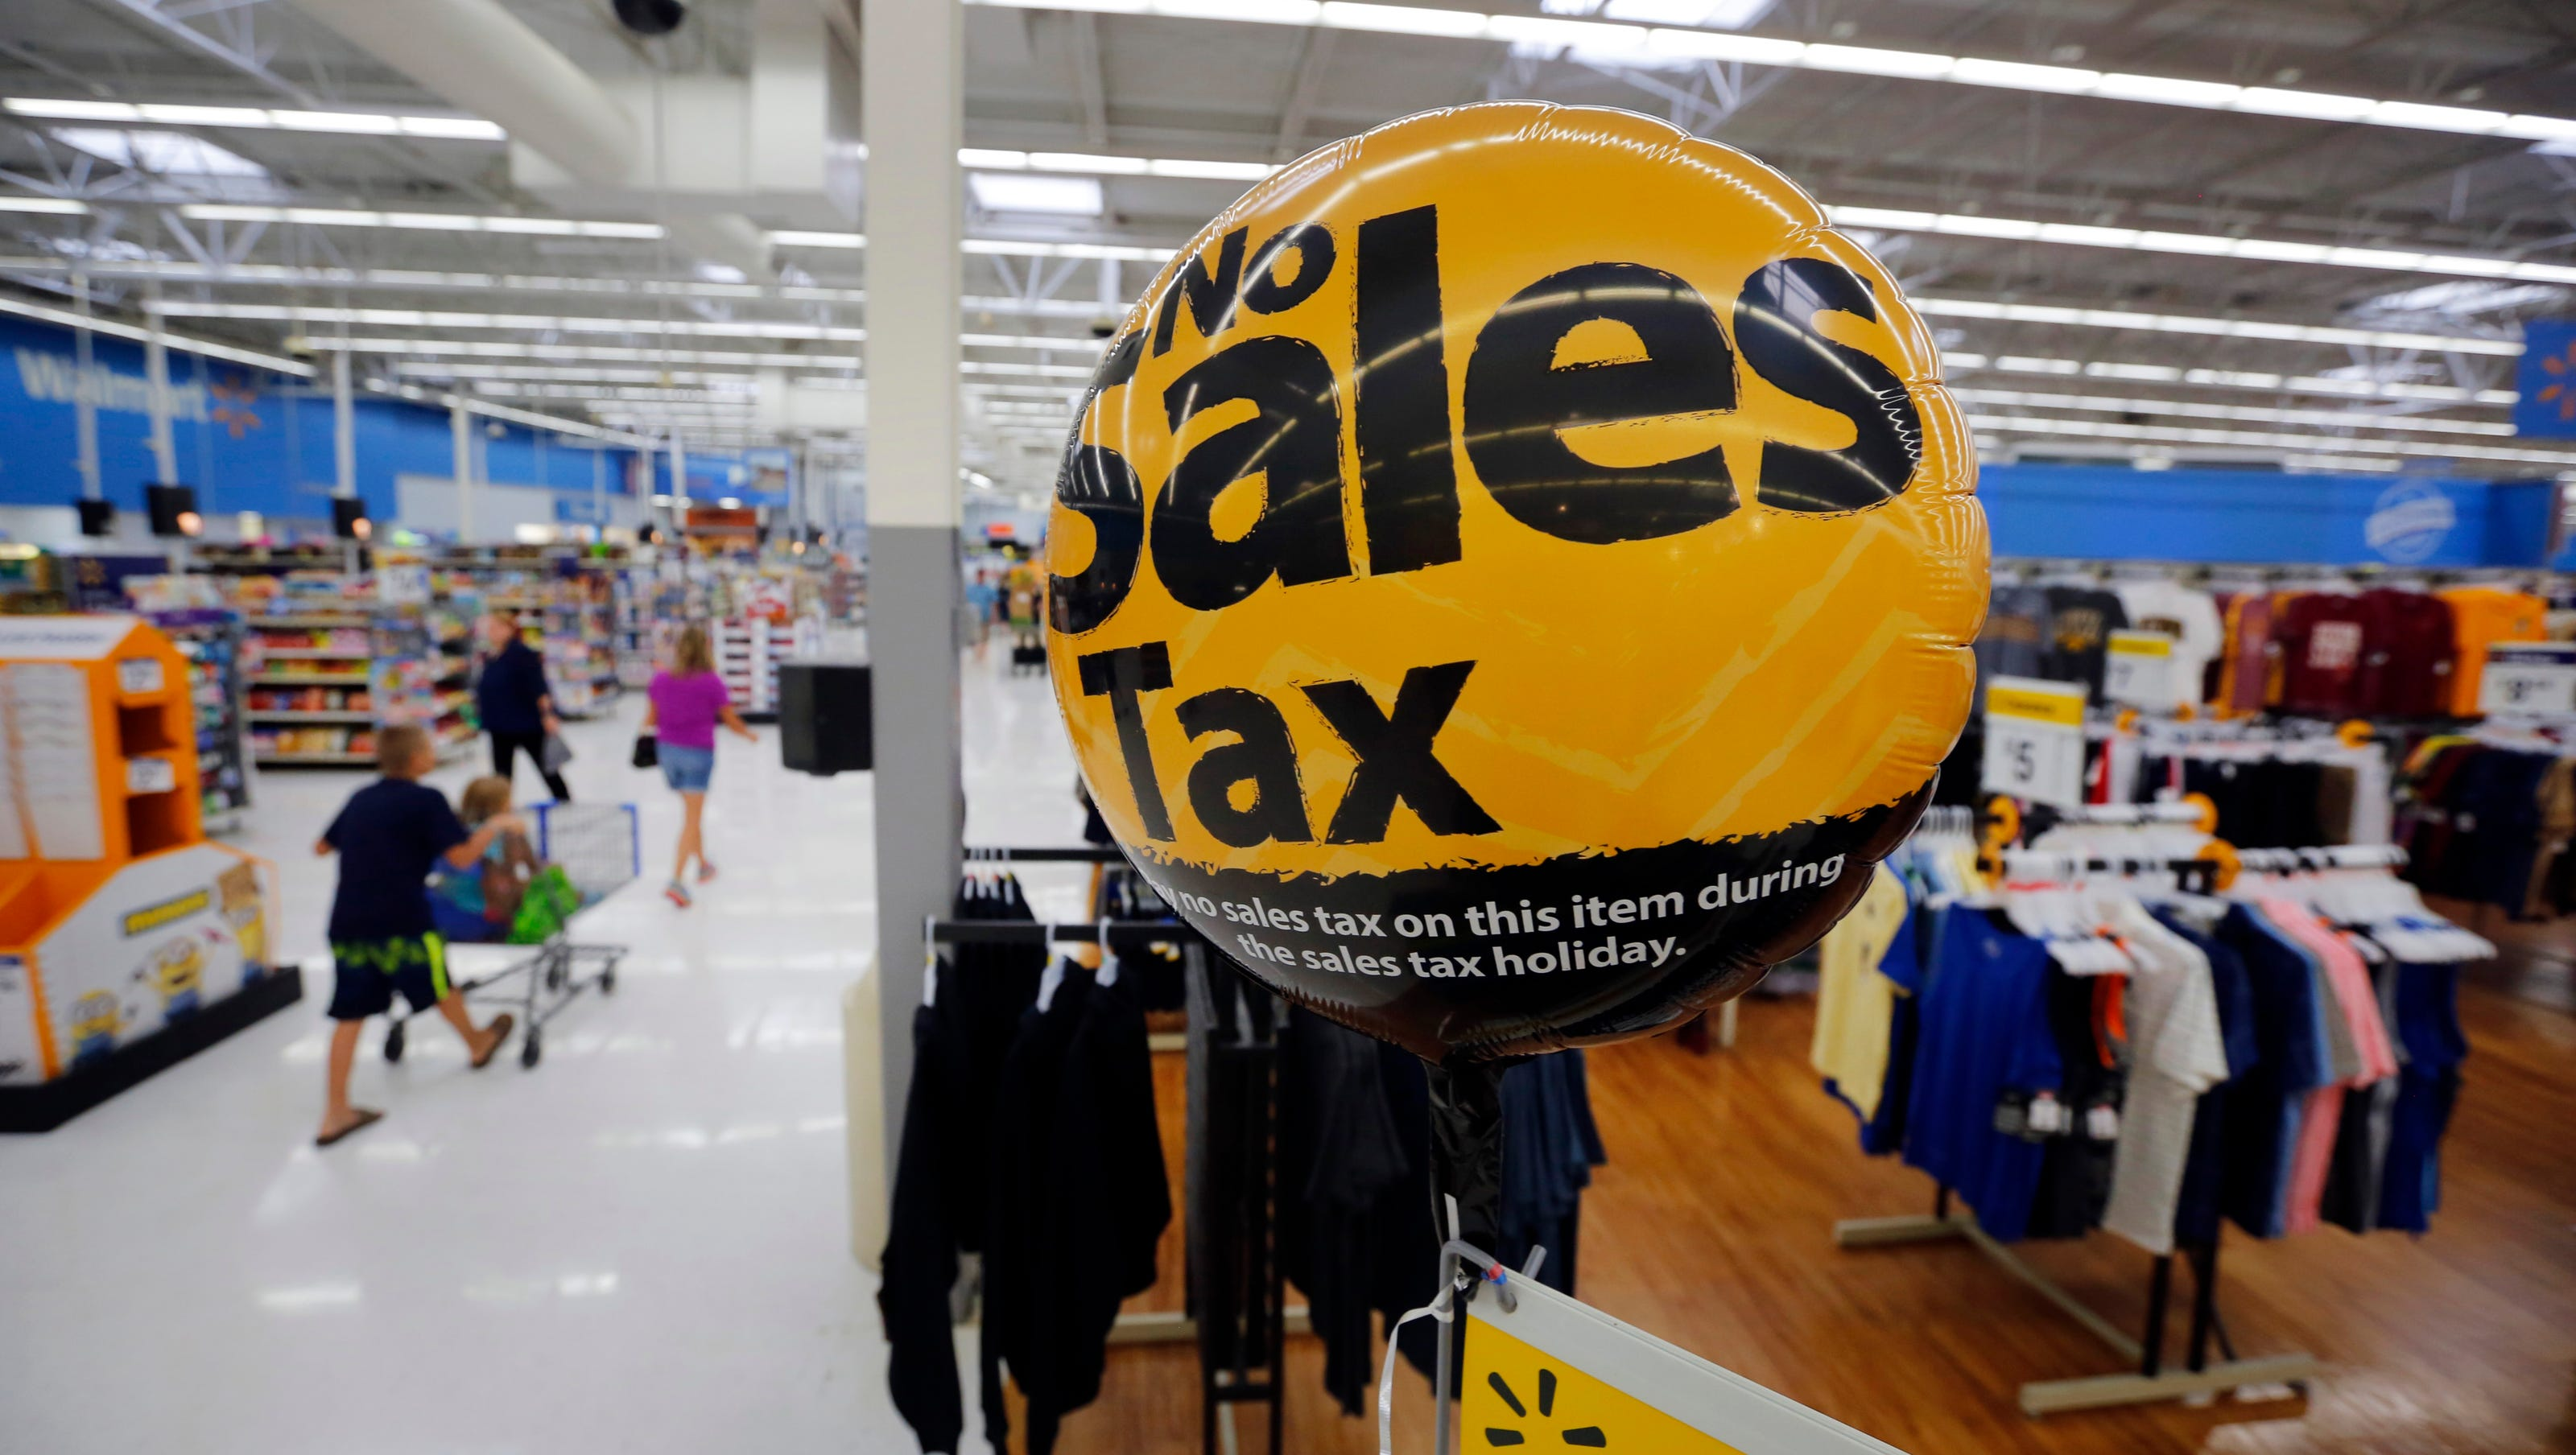 Iowa's tax holiday: 110+ items to buy tax-free (and 90 you can't)